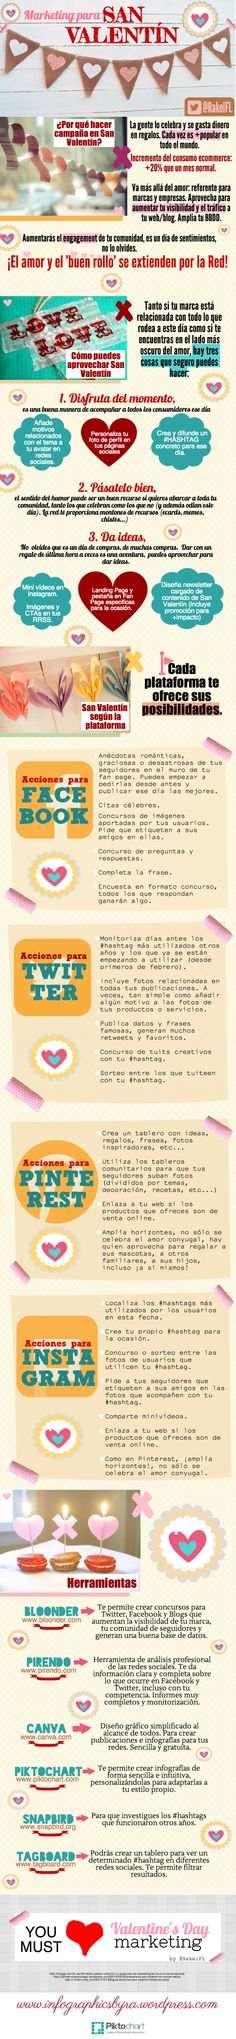 Marketing para San Valentín. Infografía de Rakel Felipe